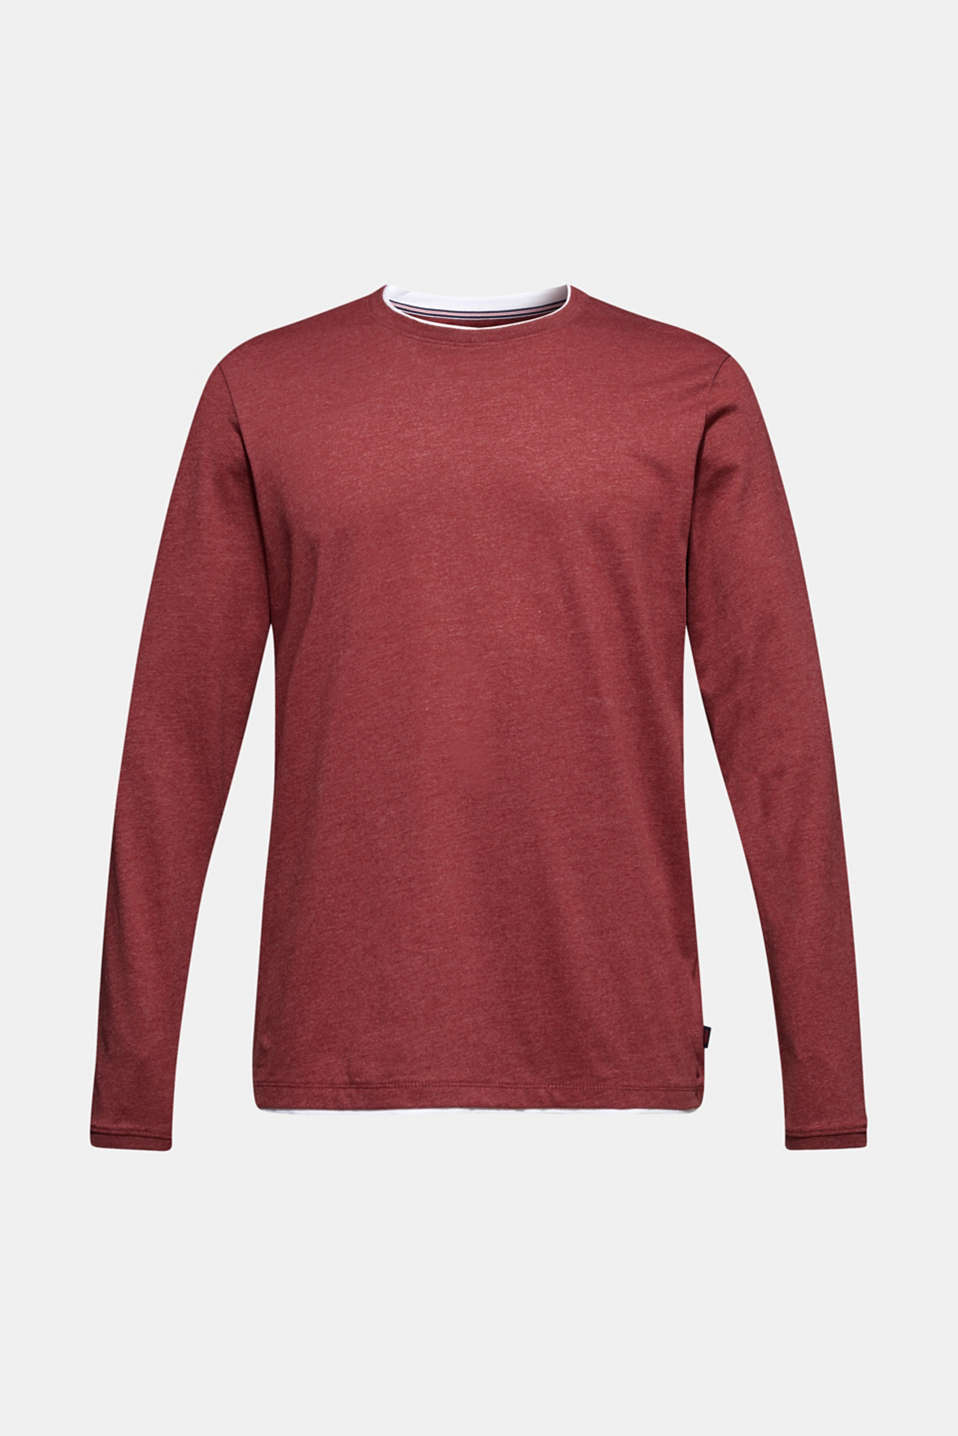 T-Shirts, BORDEAUX RED, detail image number 5